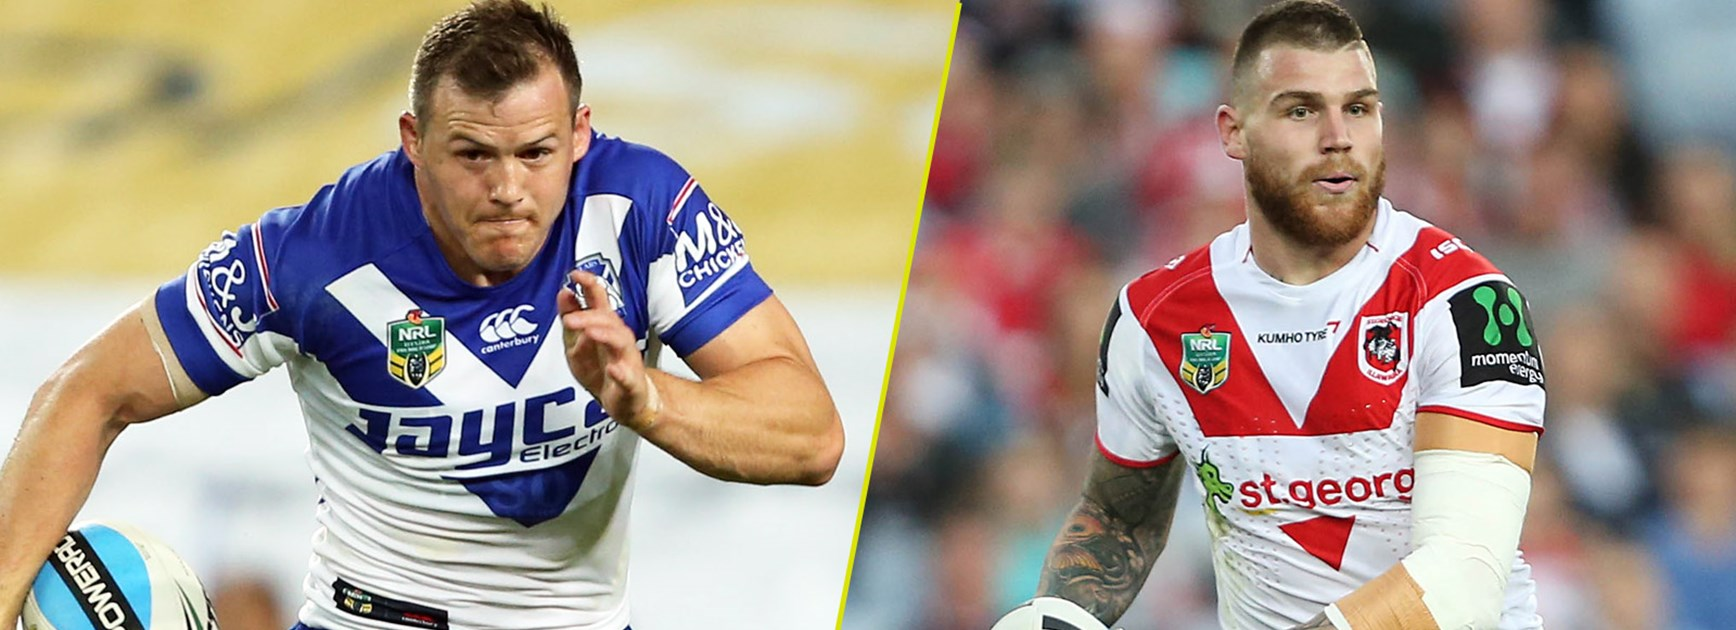 NSW teammates Brett Morris and Josh Dugan will line up against each other on Saturday night.